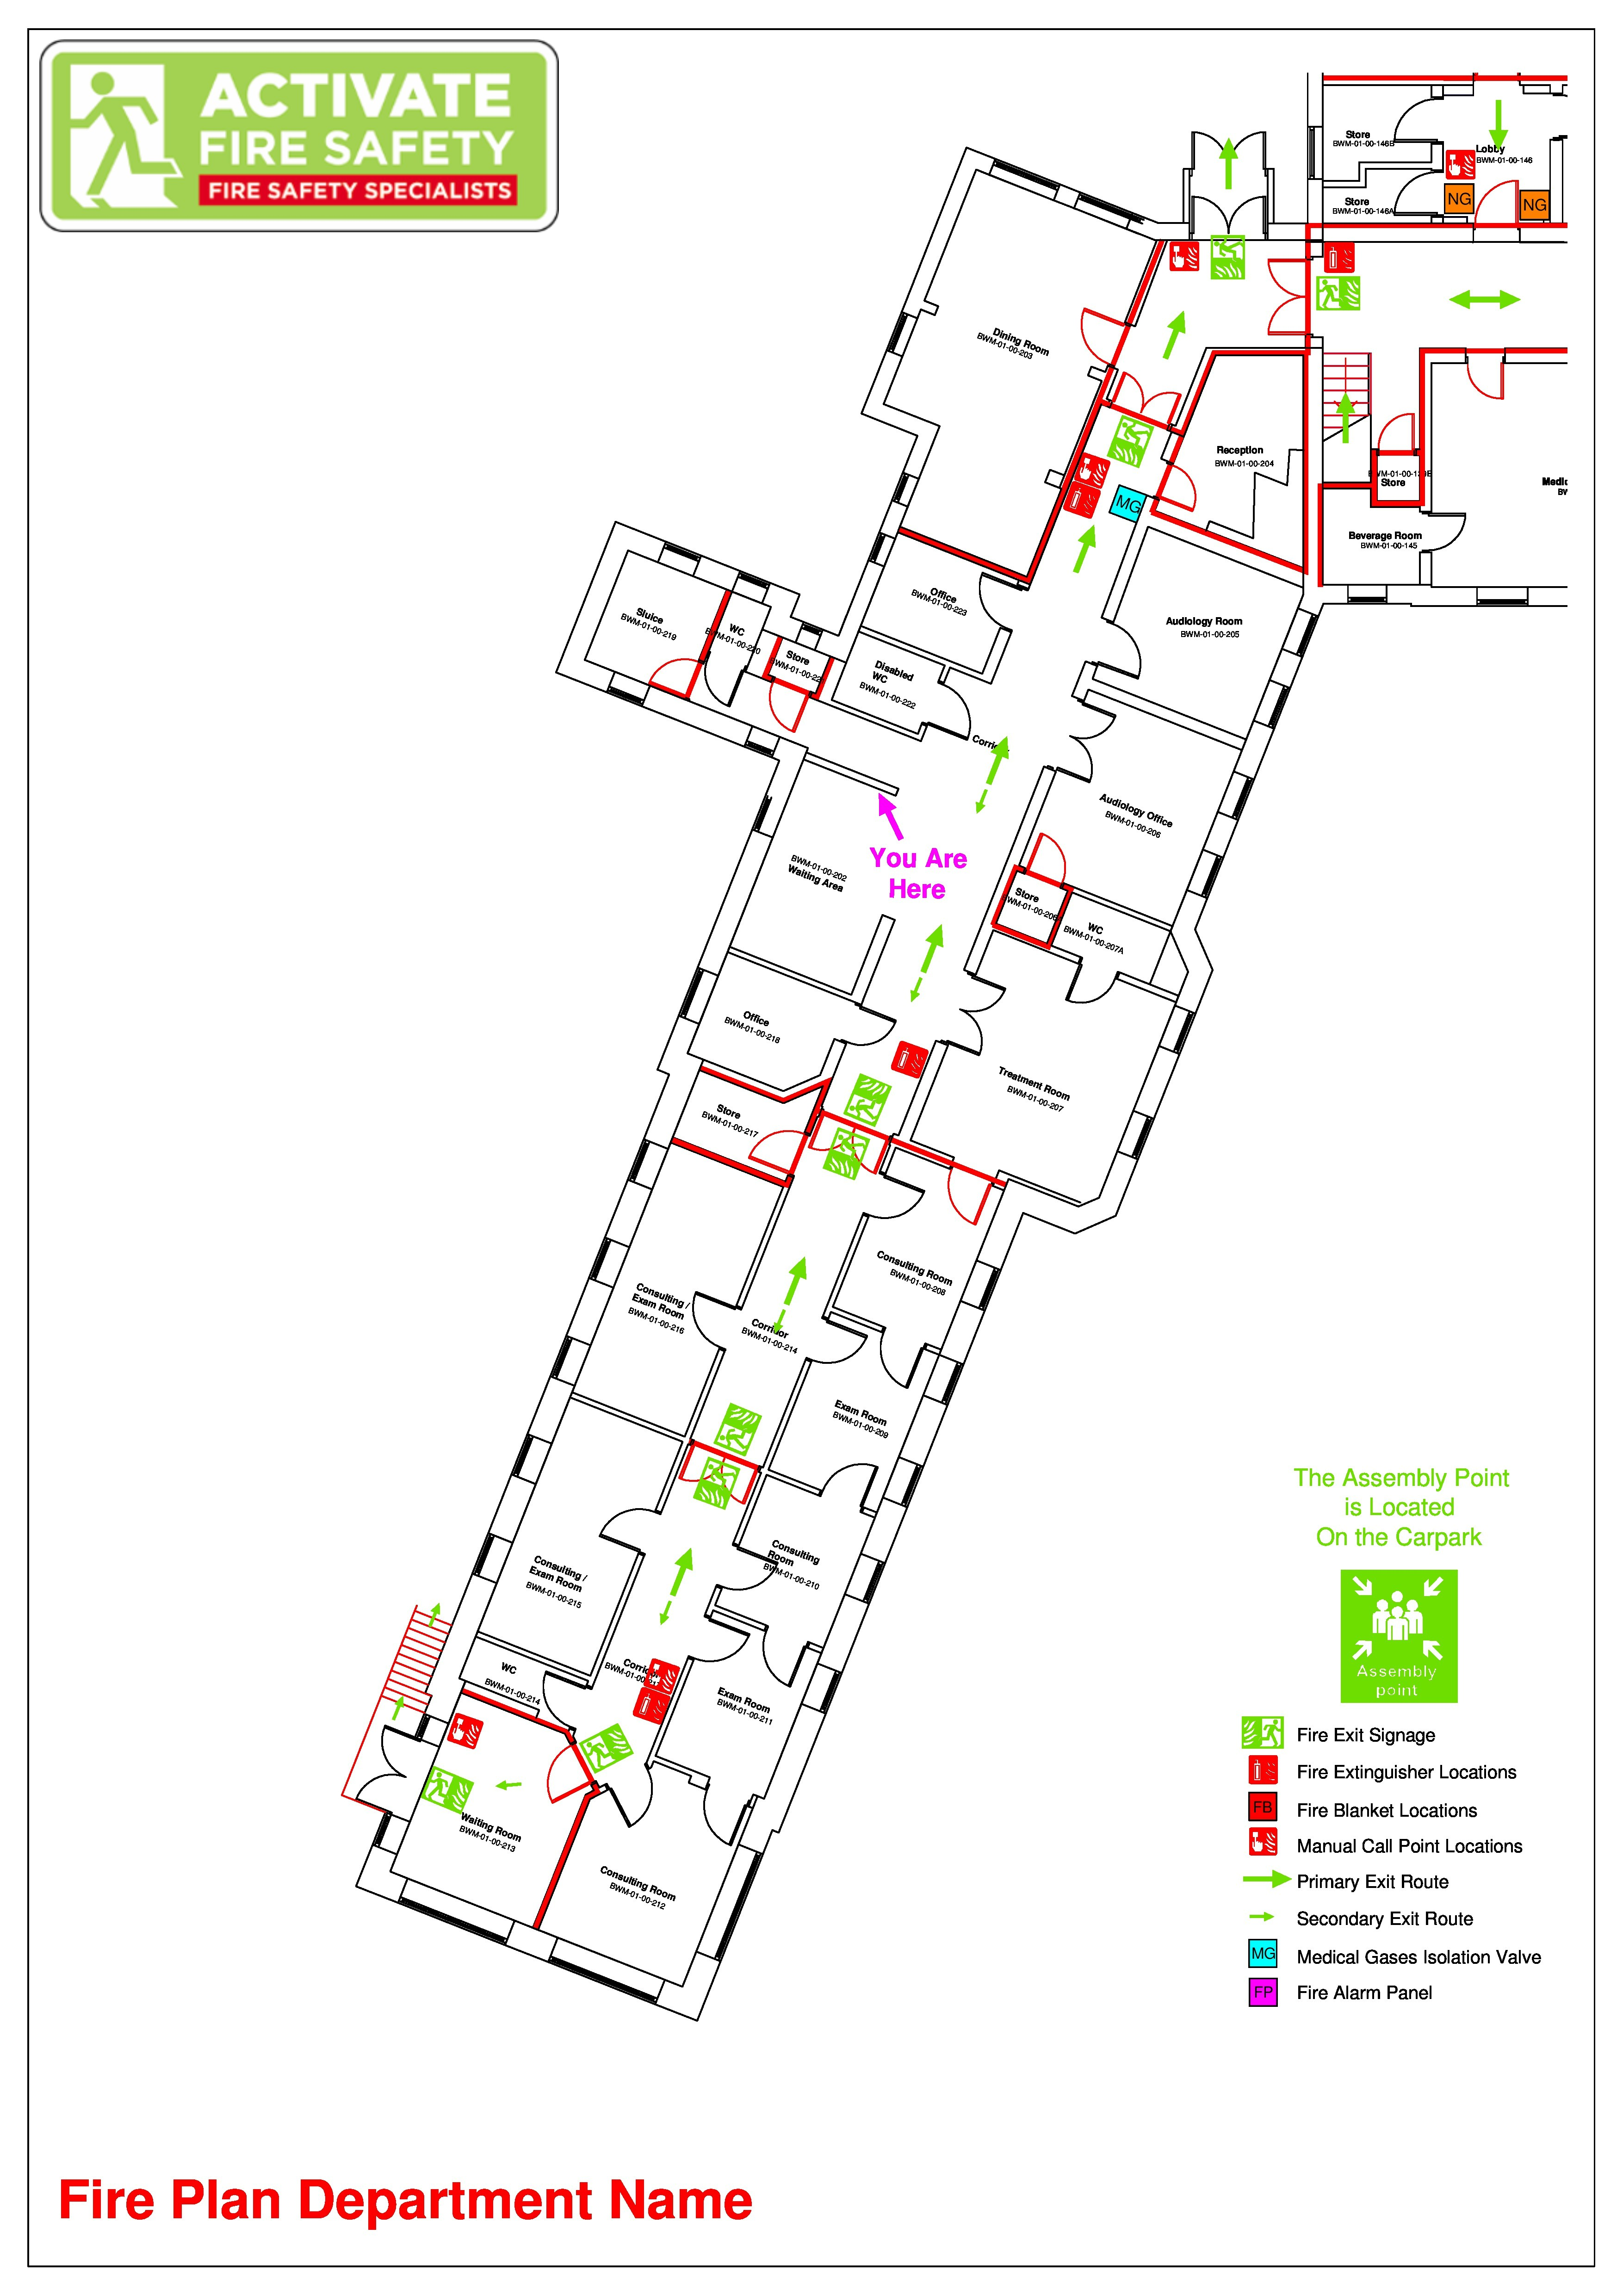 Fire Plan Drawings | Activate Fire Safety | Fire Risk ...